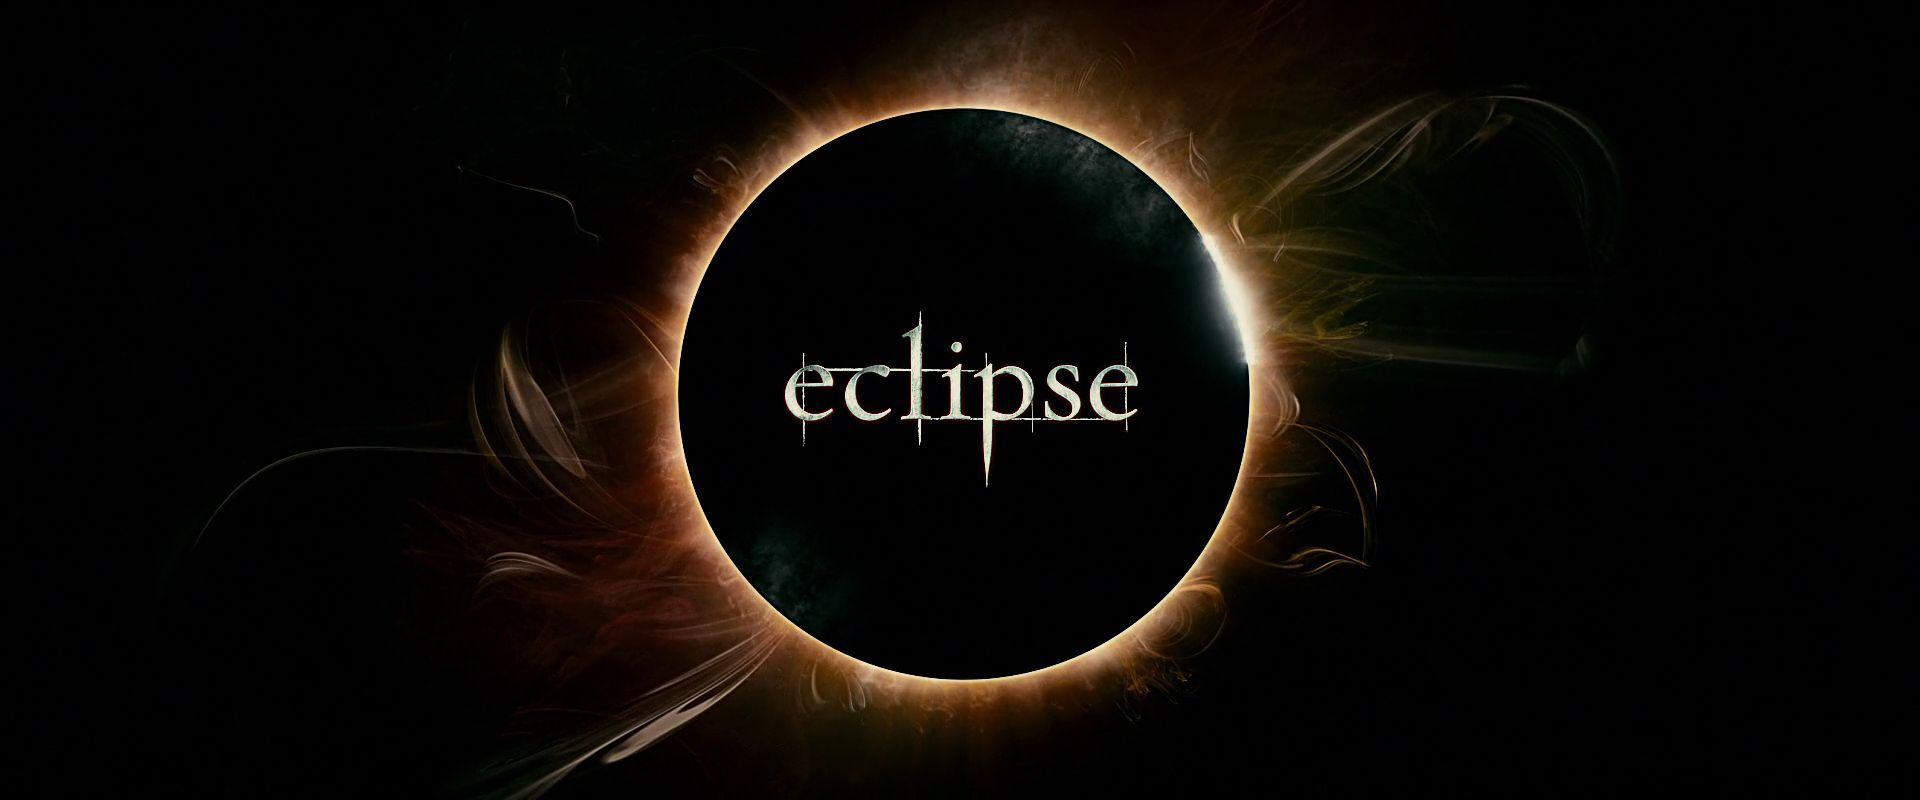 twilight series images eclipse - photo #45